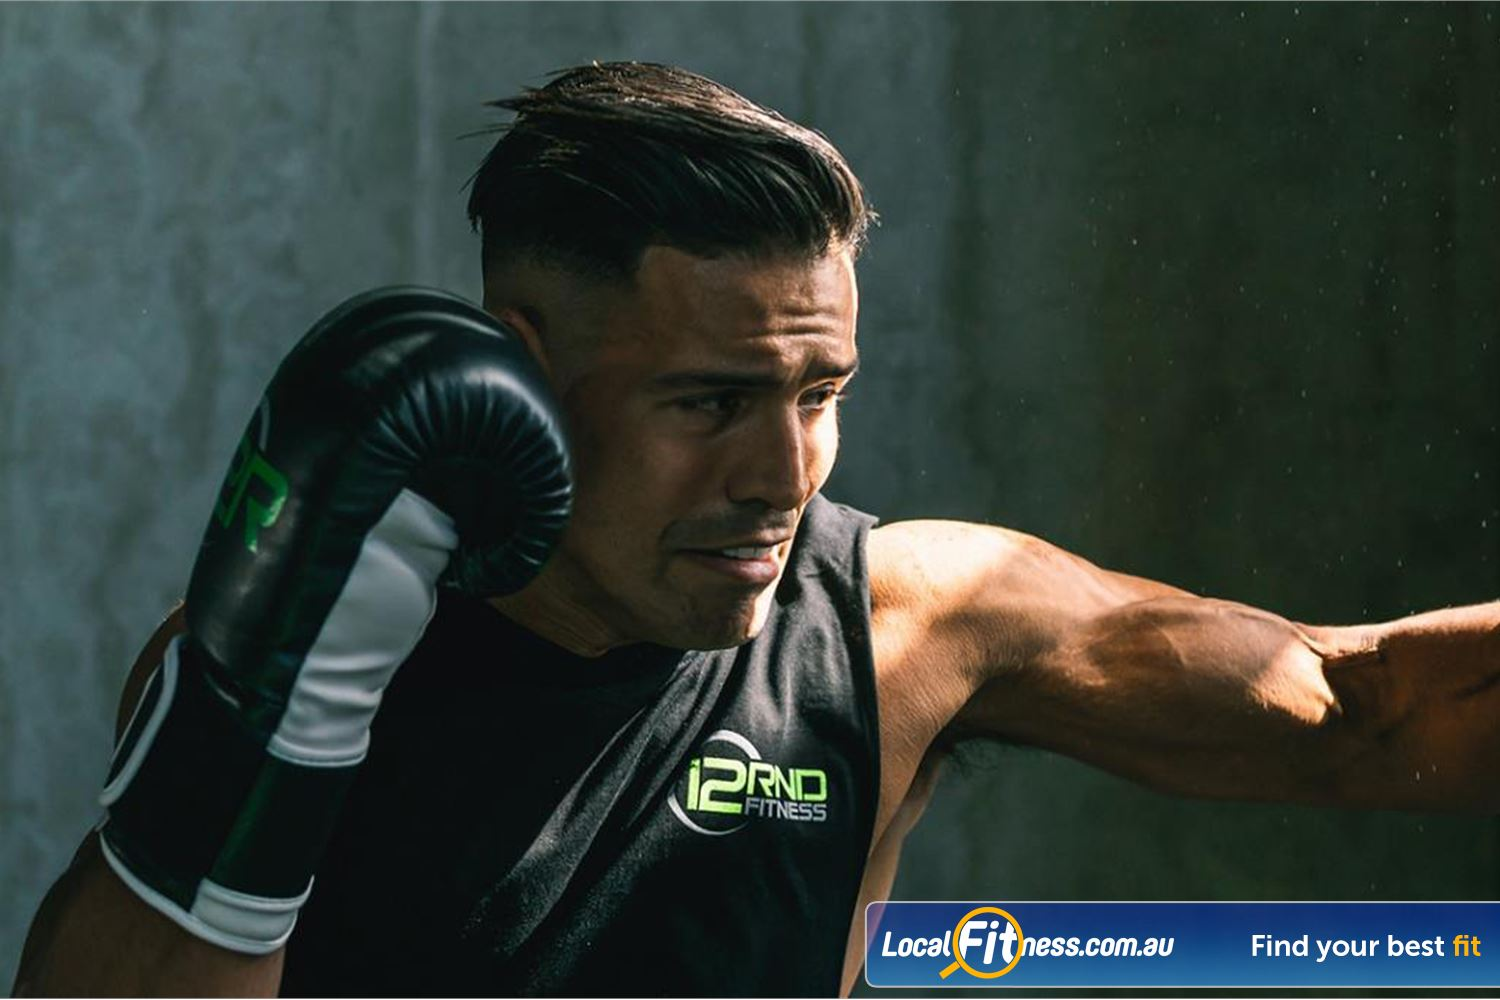 12 Round Fitness Near Glen Iris Our workouts are designed around 12 rounds of boxing in Camberwell.